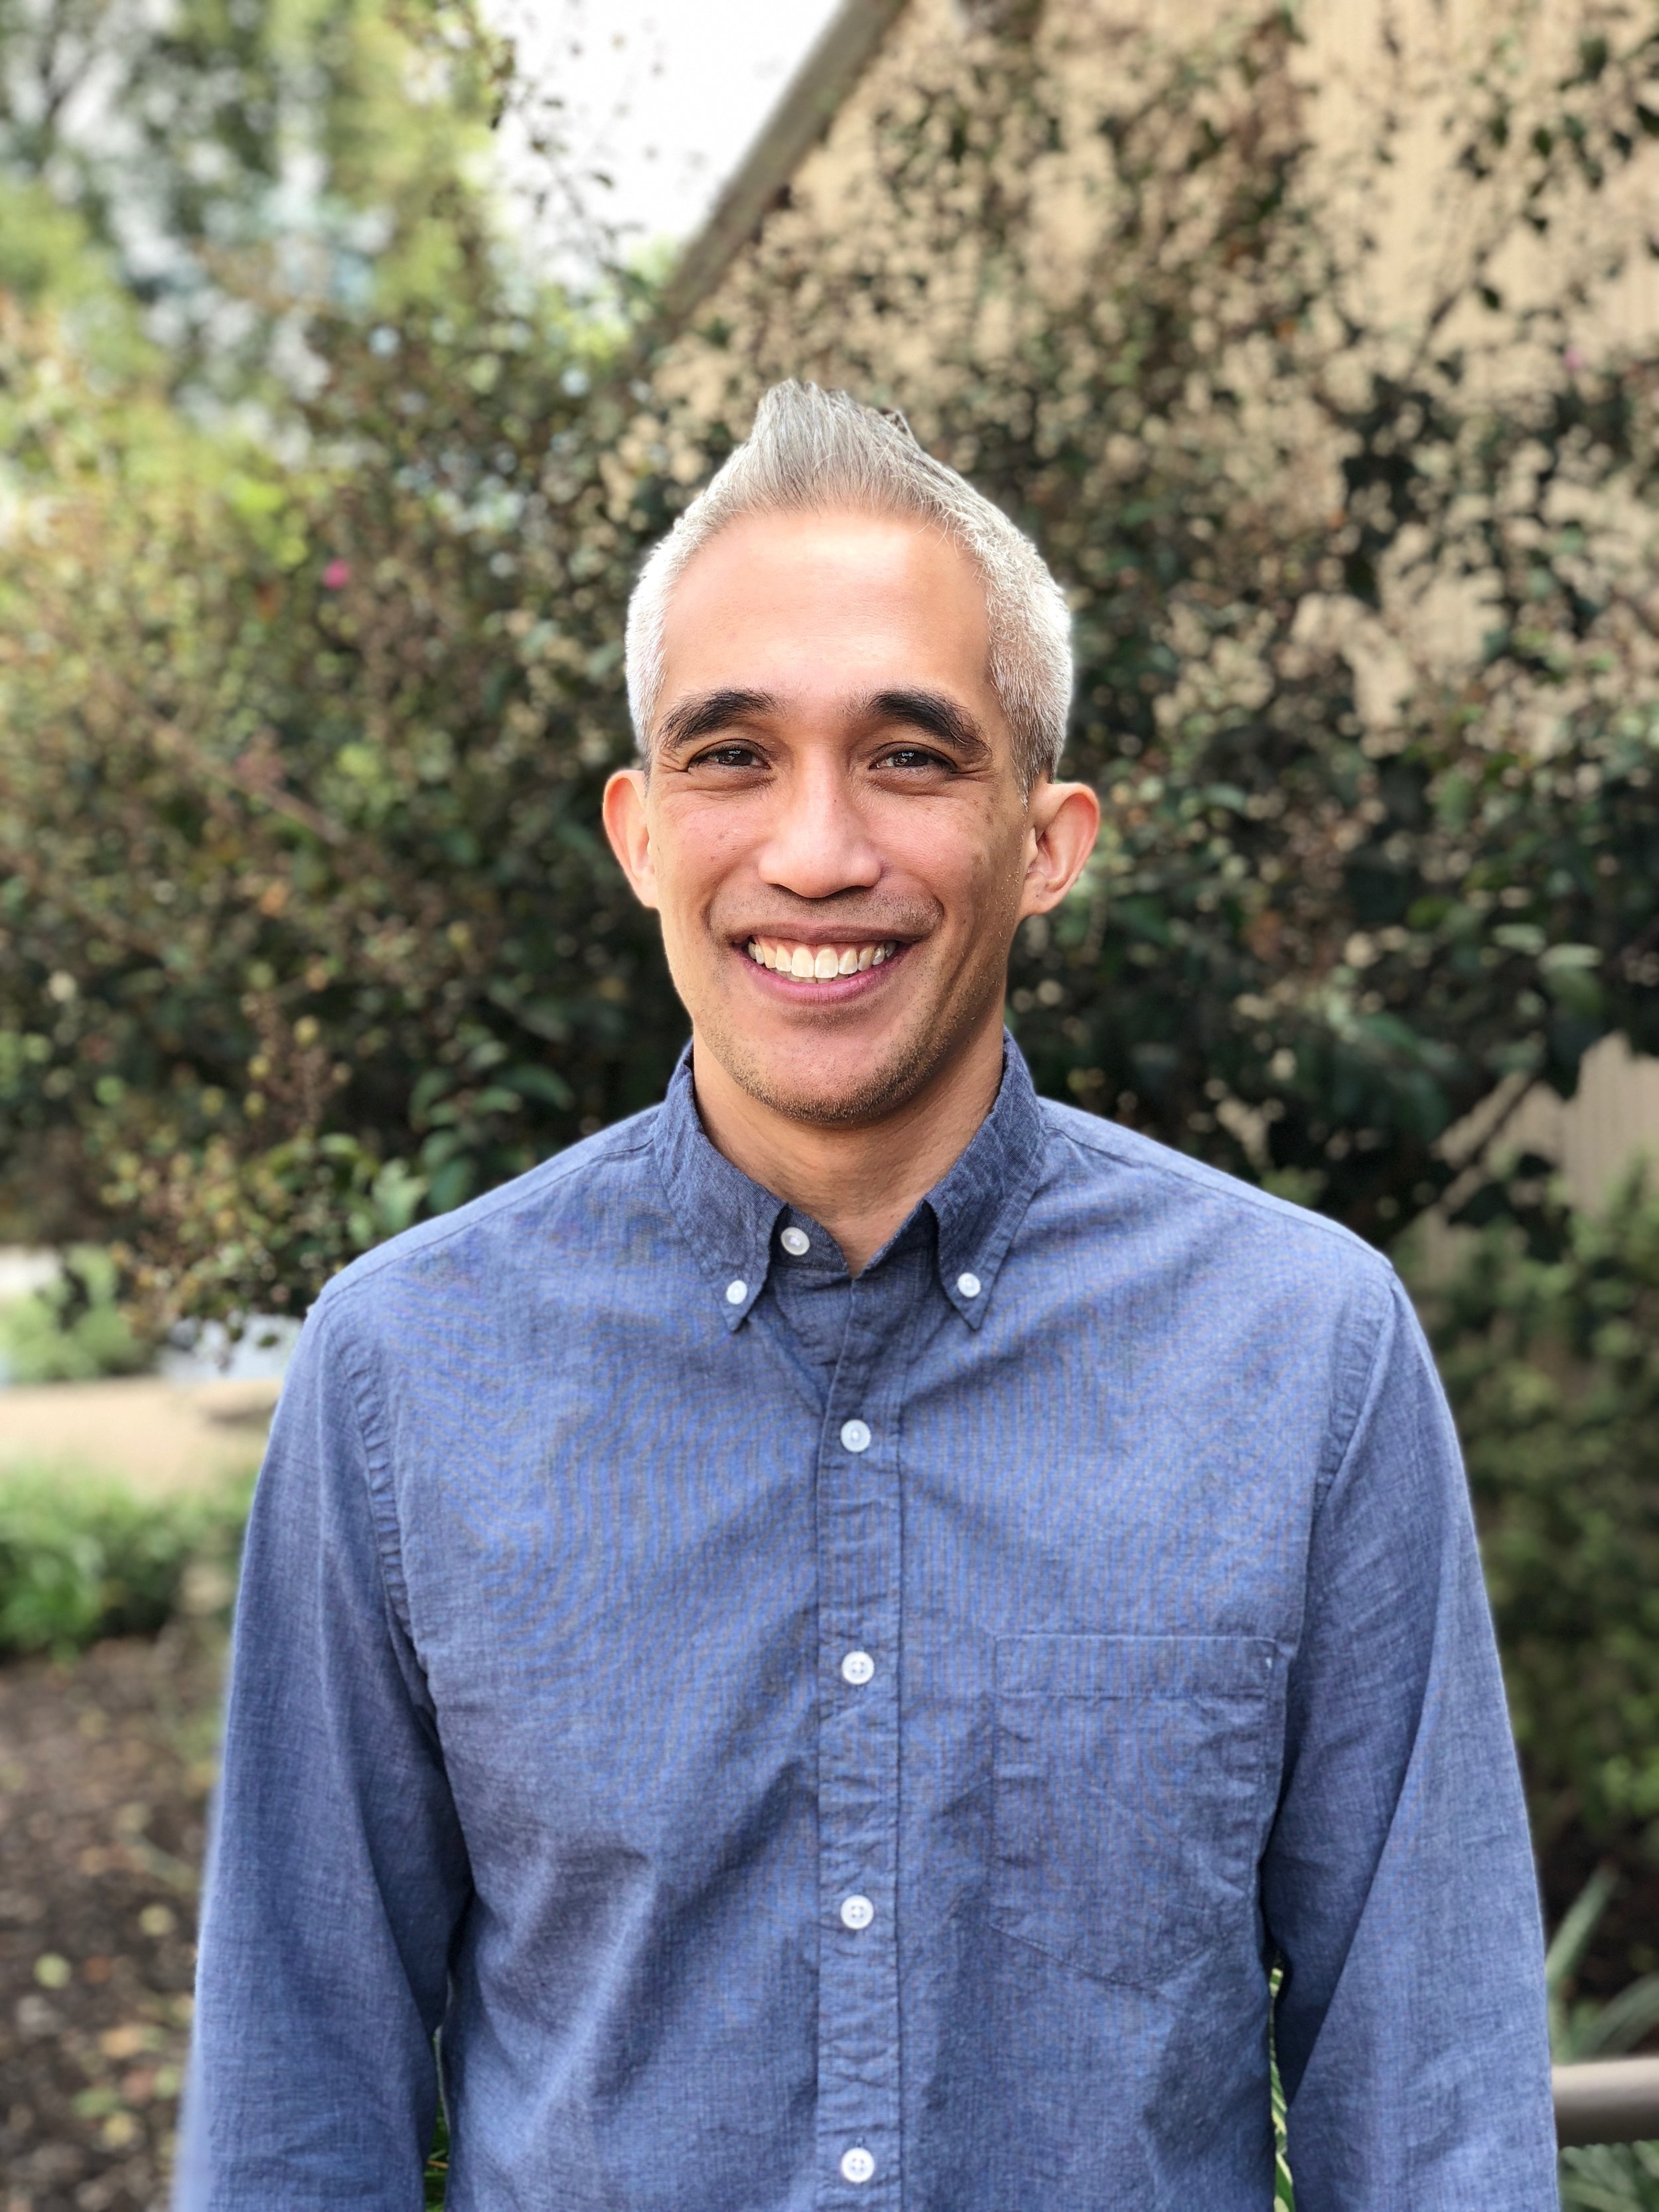 Ted Law leads the church by overseeing the vision and mission of the Church, teaching, and connecting us with the wider Kingdom of God through partnerships and community involvement. For fun he loves traveling with family, swimming, photography, and cars.